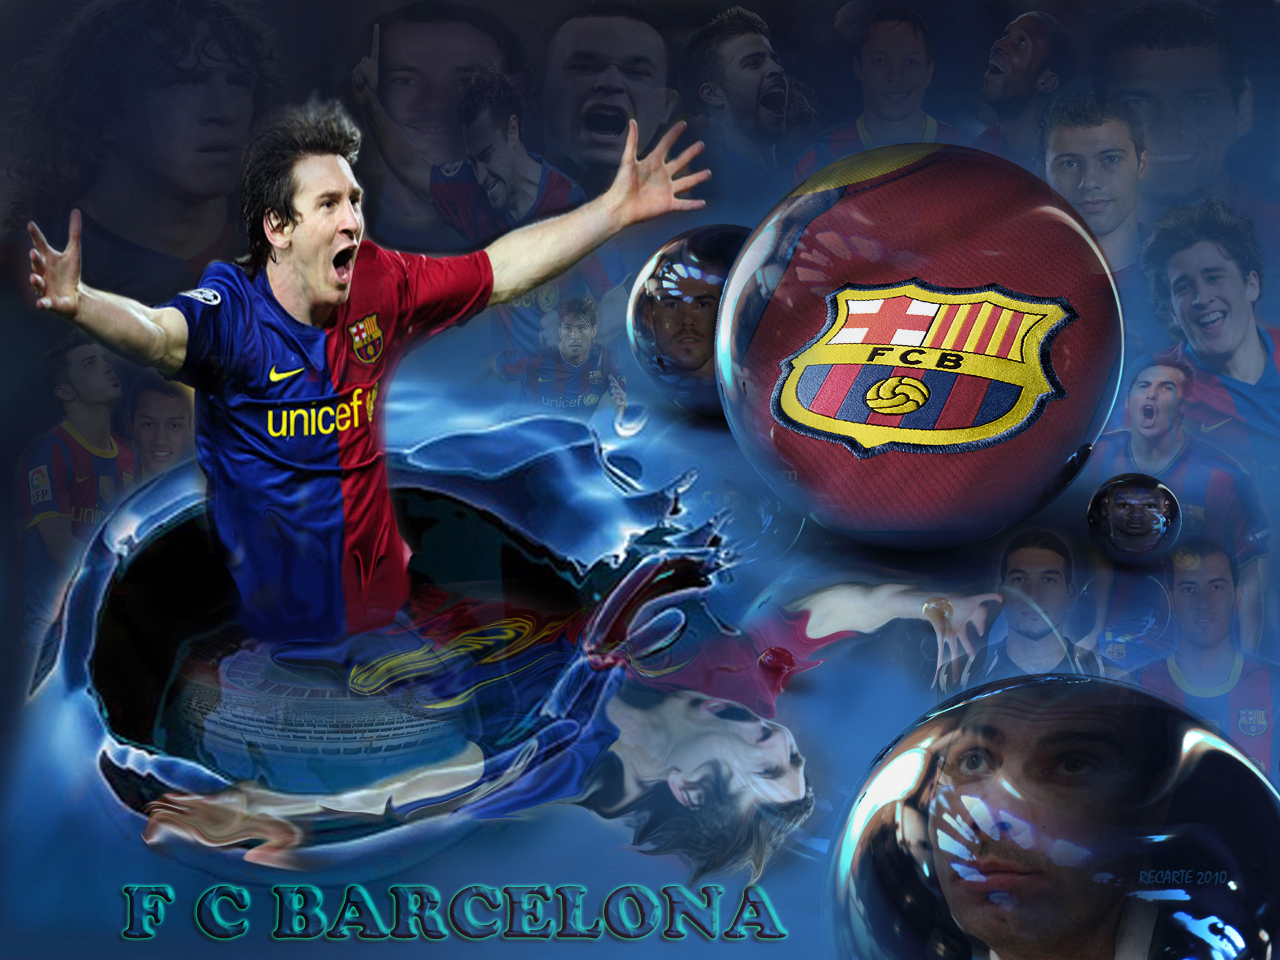 Sport Wallpaper Fc Barcelona: ALL SPORTS CELEBRITIES: FC Barcelona Players New HD